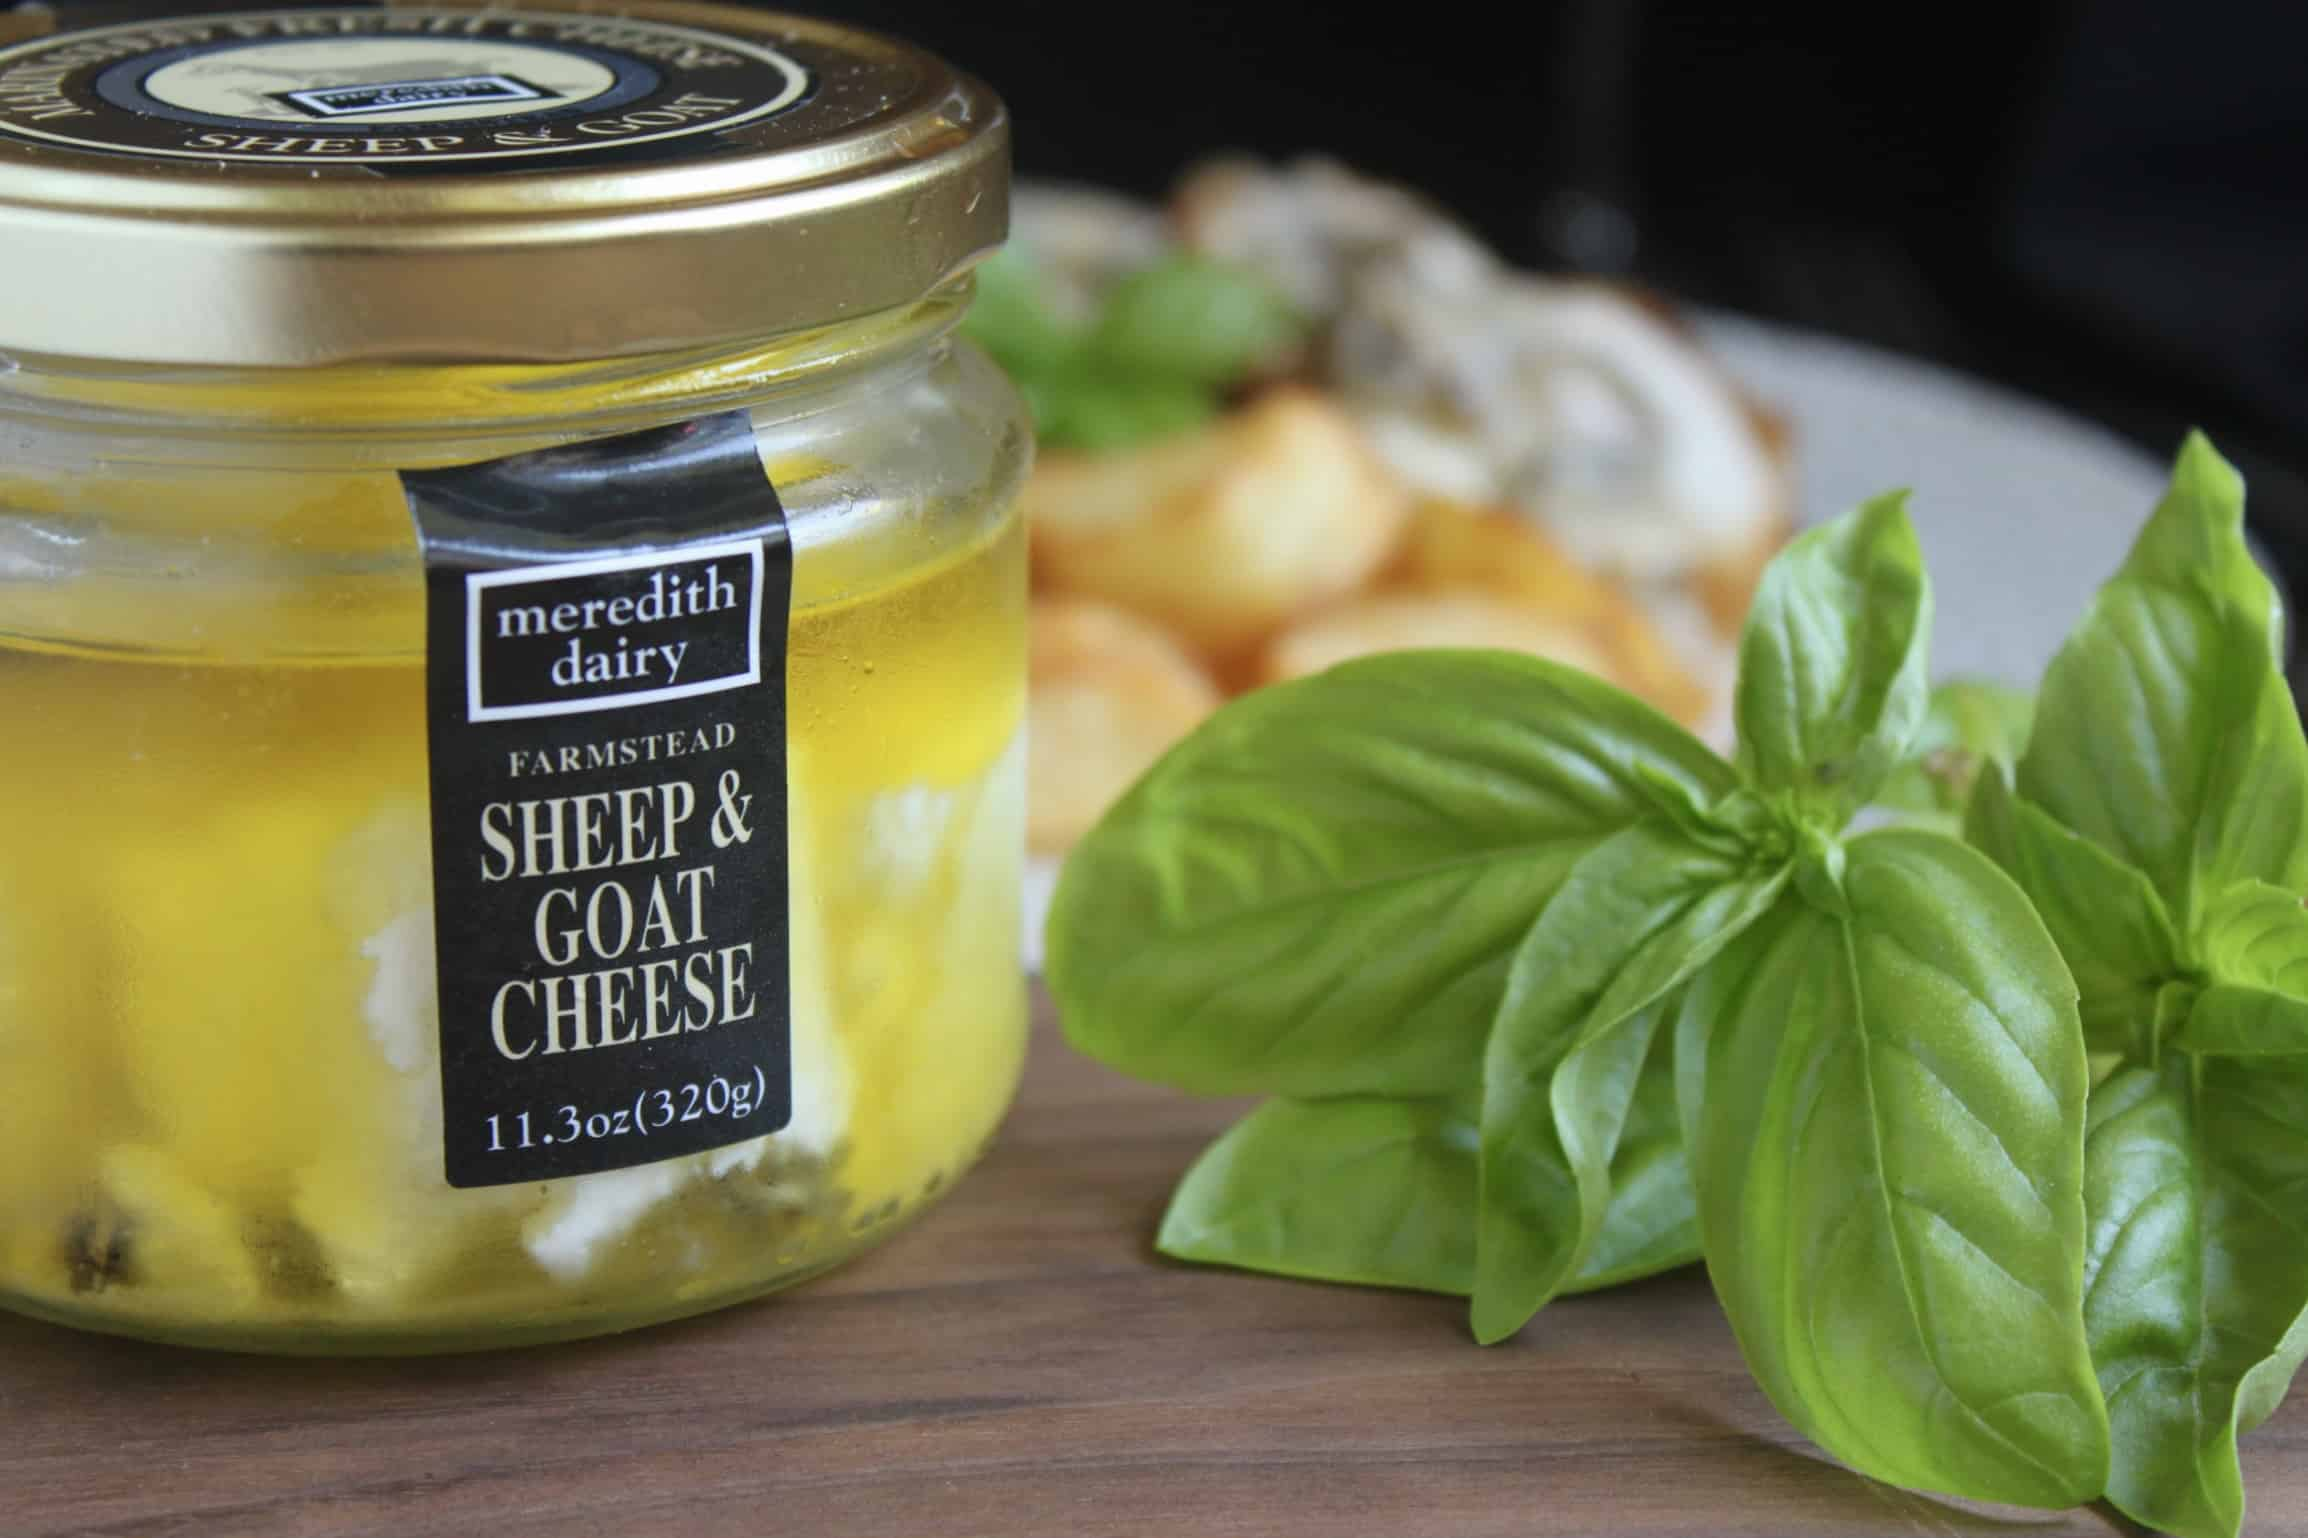 Meredith Dairy marinated goat cheese and basil leaves